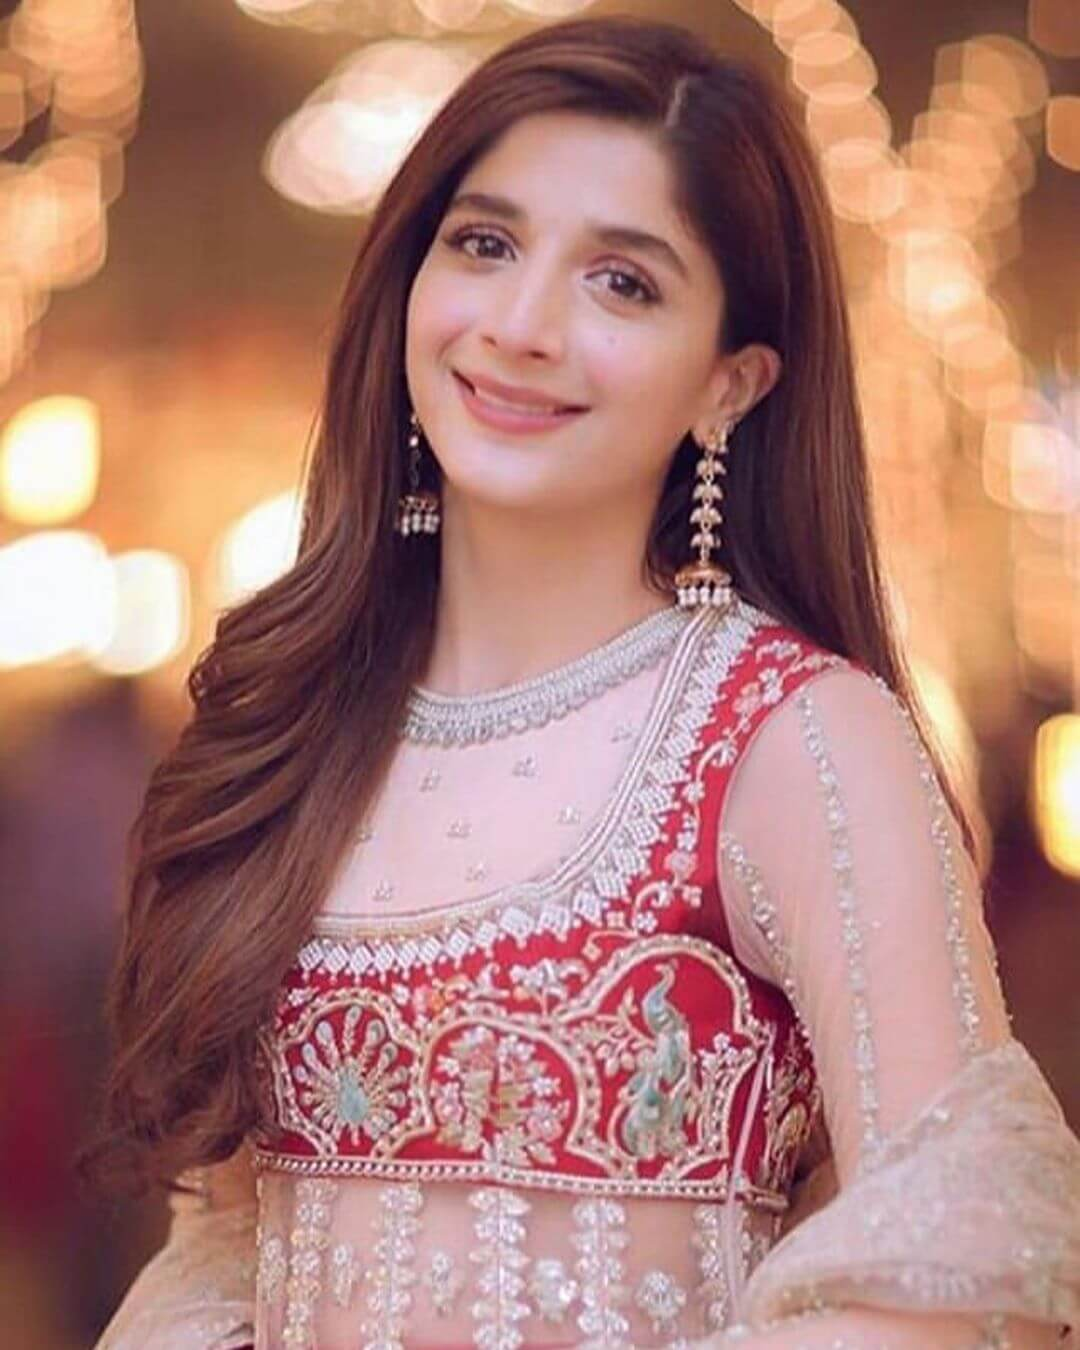 Mawra Hocane Age, Husband, Images(pic), Biography, Education, Height, Sister, Birthday, Family, , Net Worth, Instagram, Twitter, Wiki, Facebook, Imdb (12)